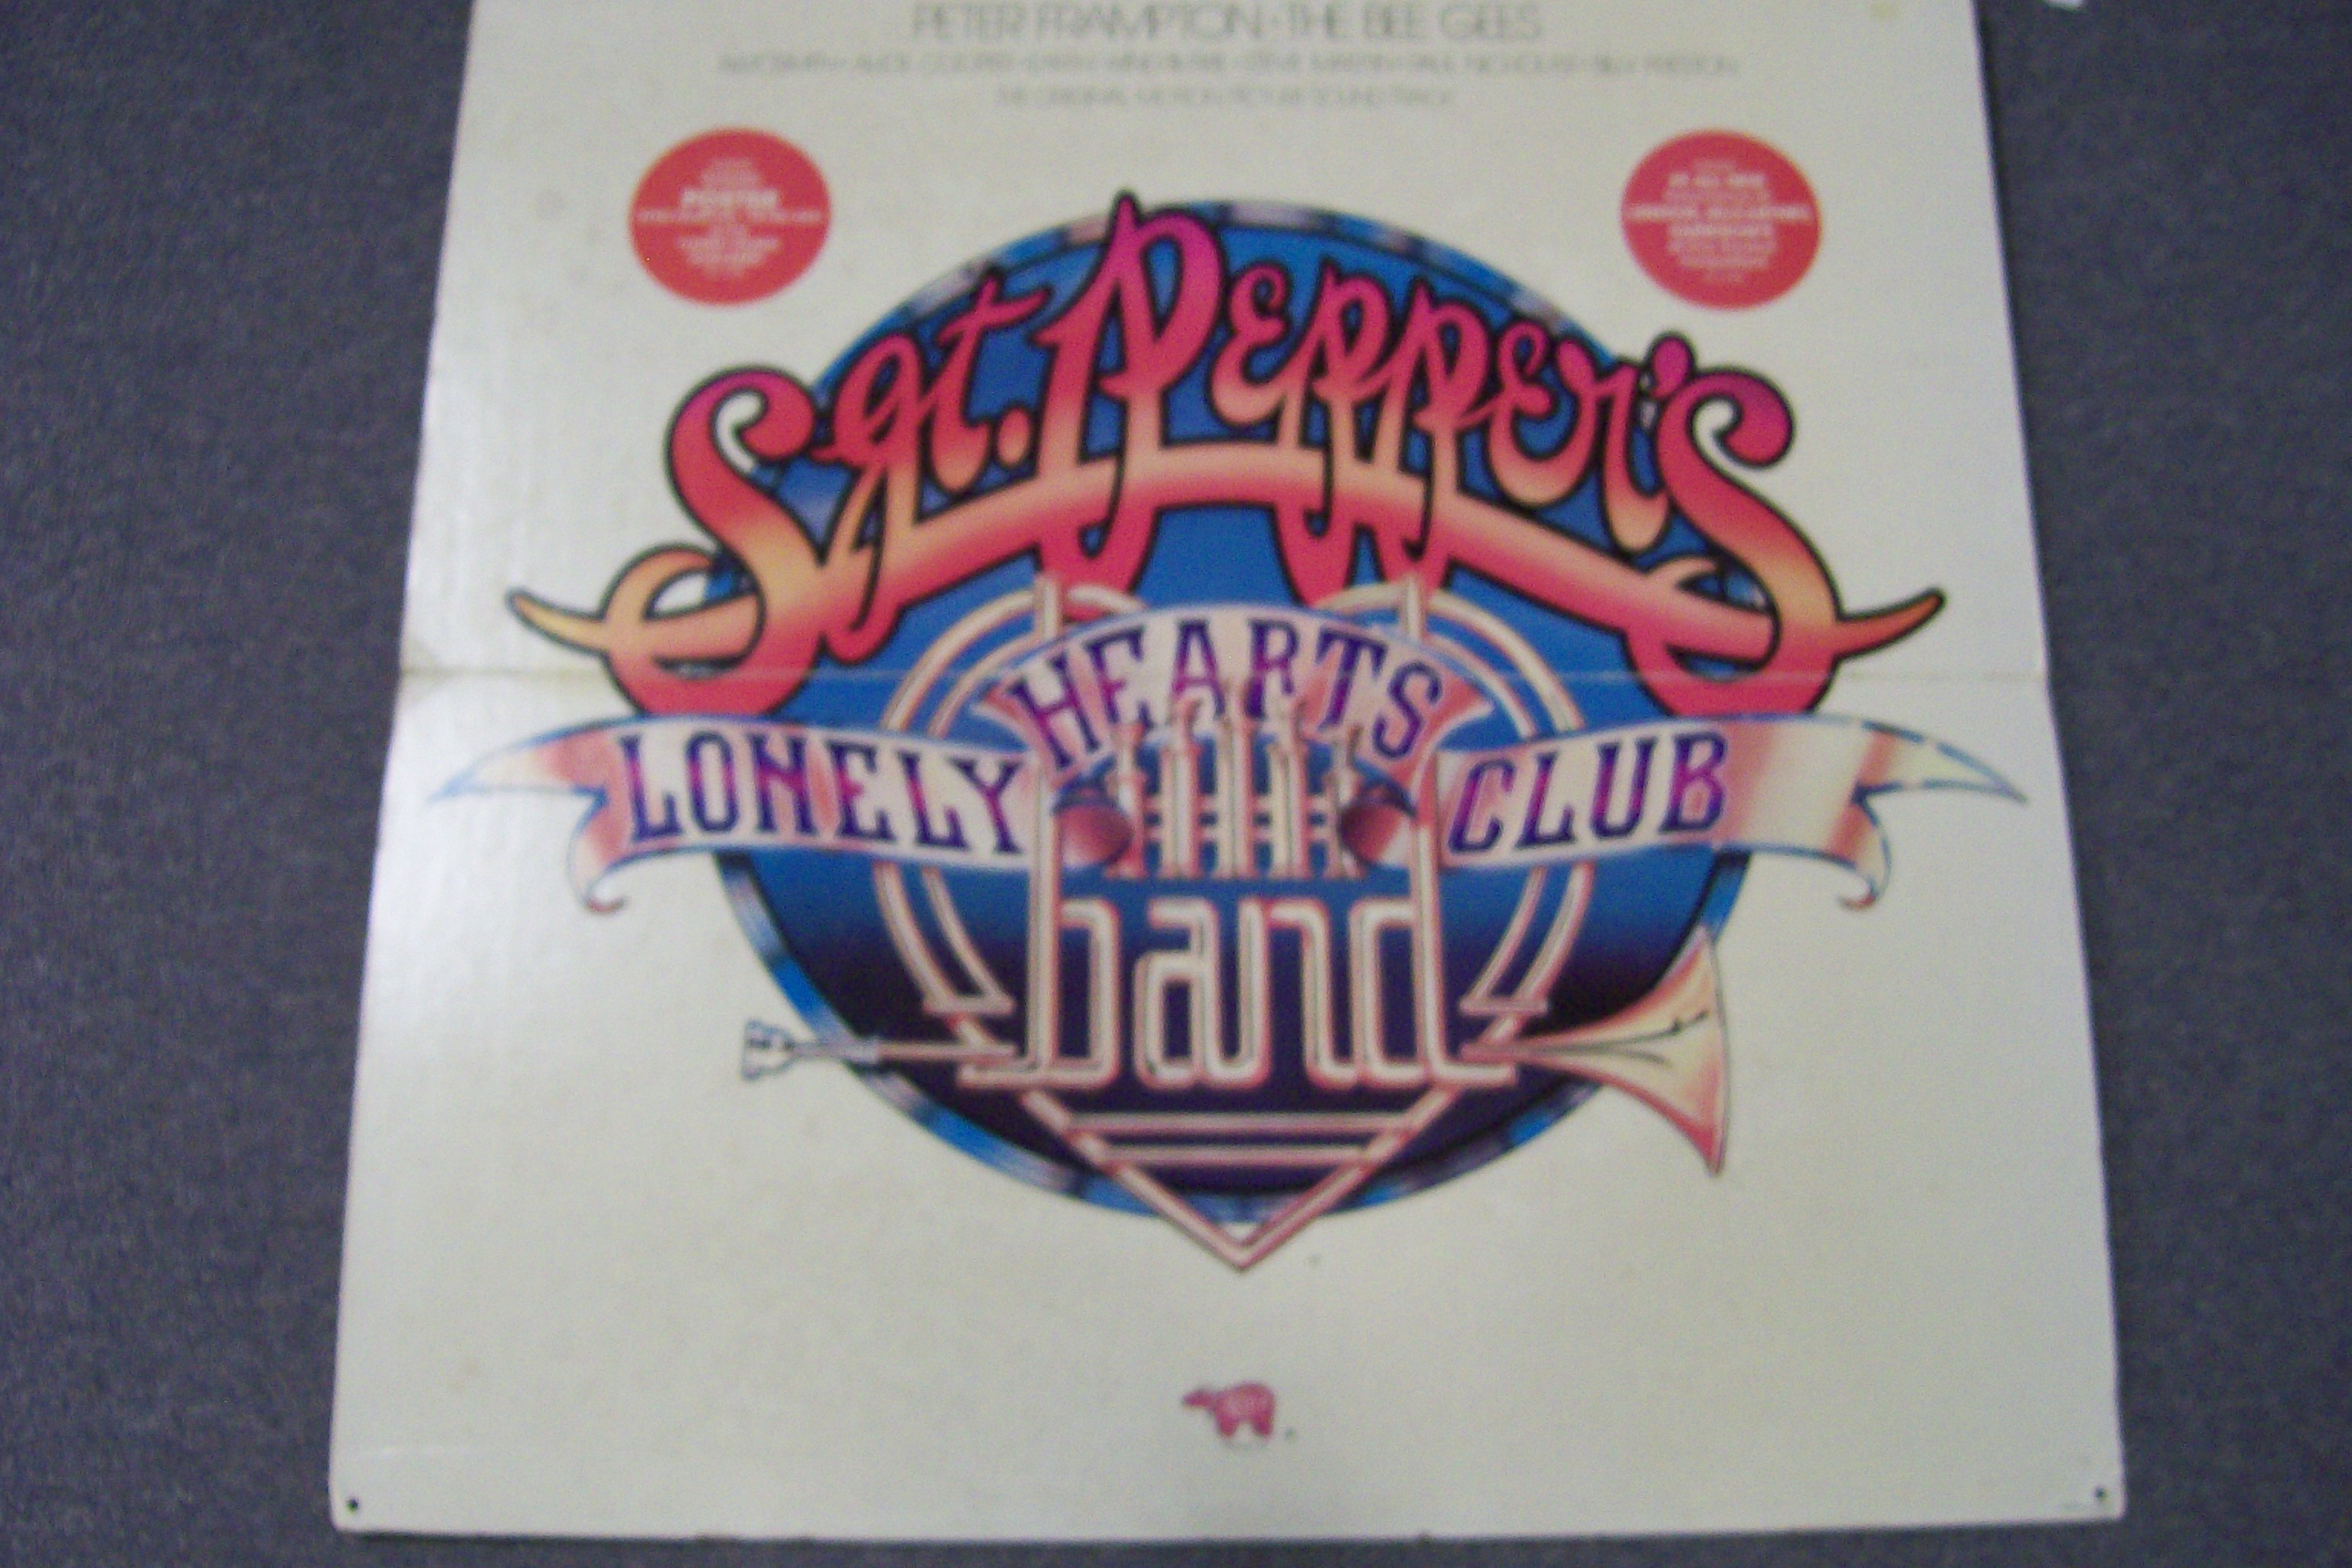 The Beatles Sgt. Peppers Lonely Hearts Club Band Poster 3 FT.SQ.